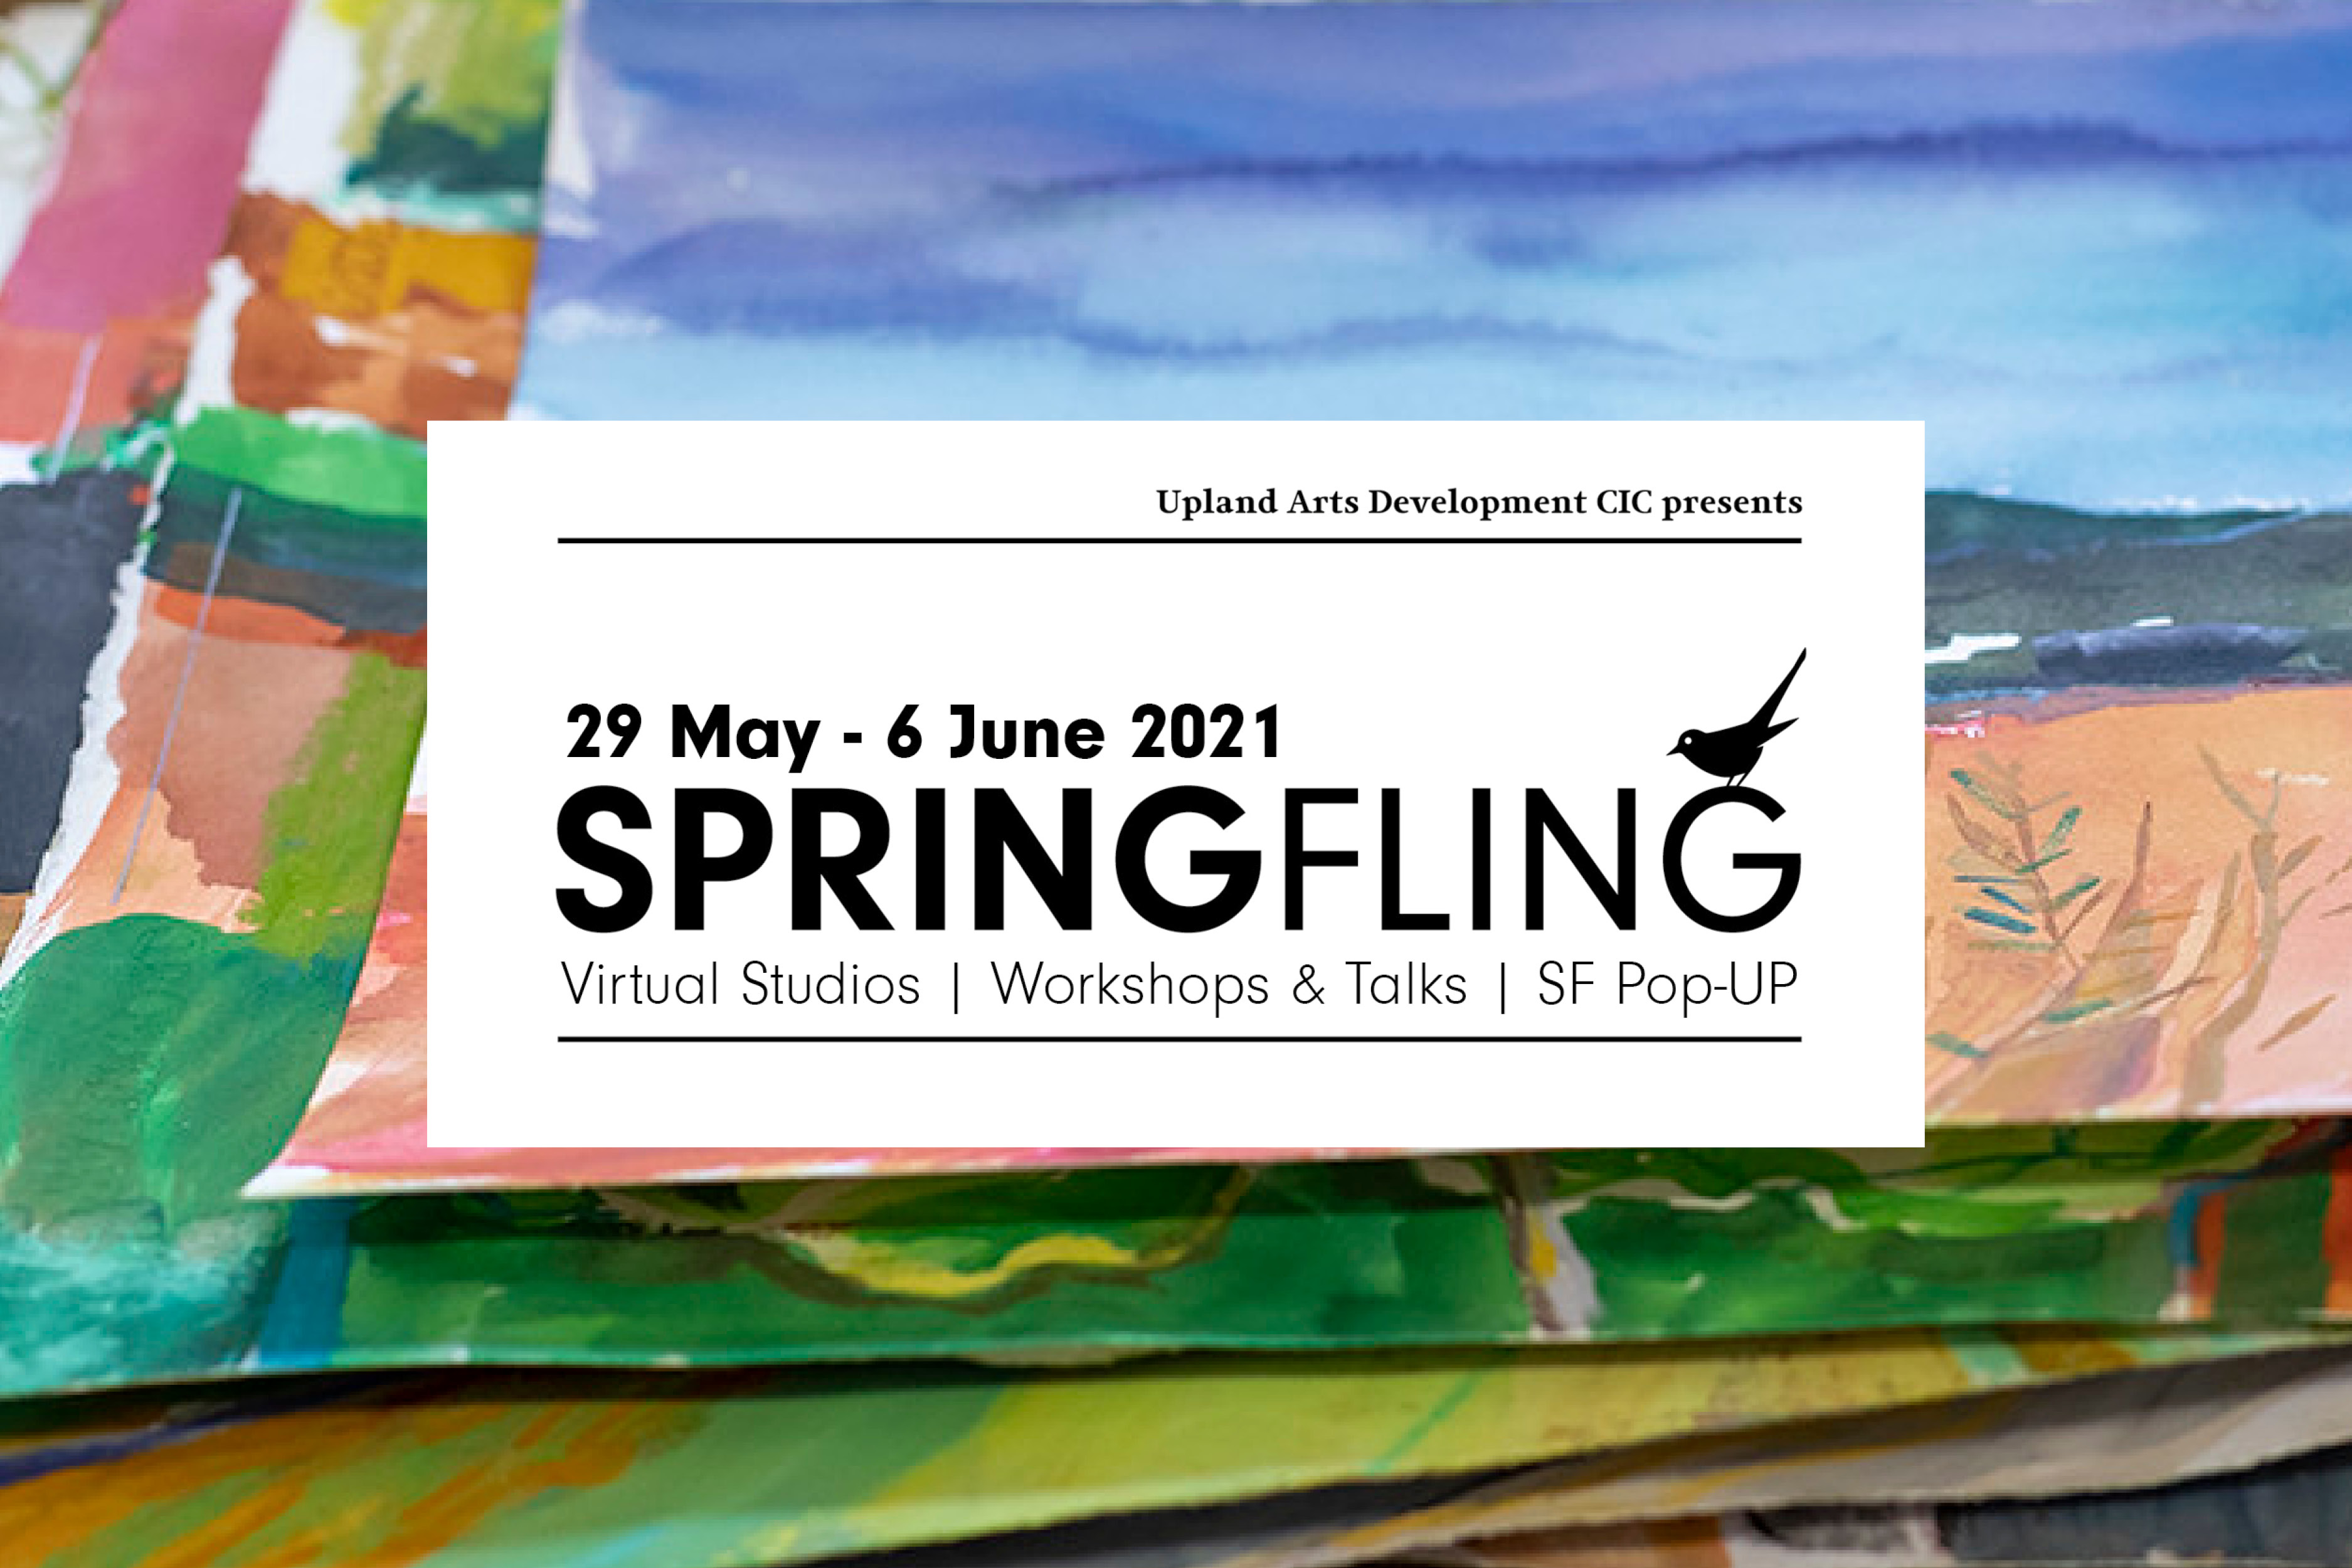 Spring Fling 2021: Applications Open for Dumfries & Galloway Artists Image #0